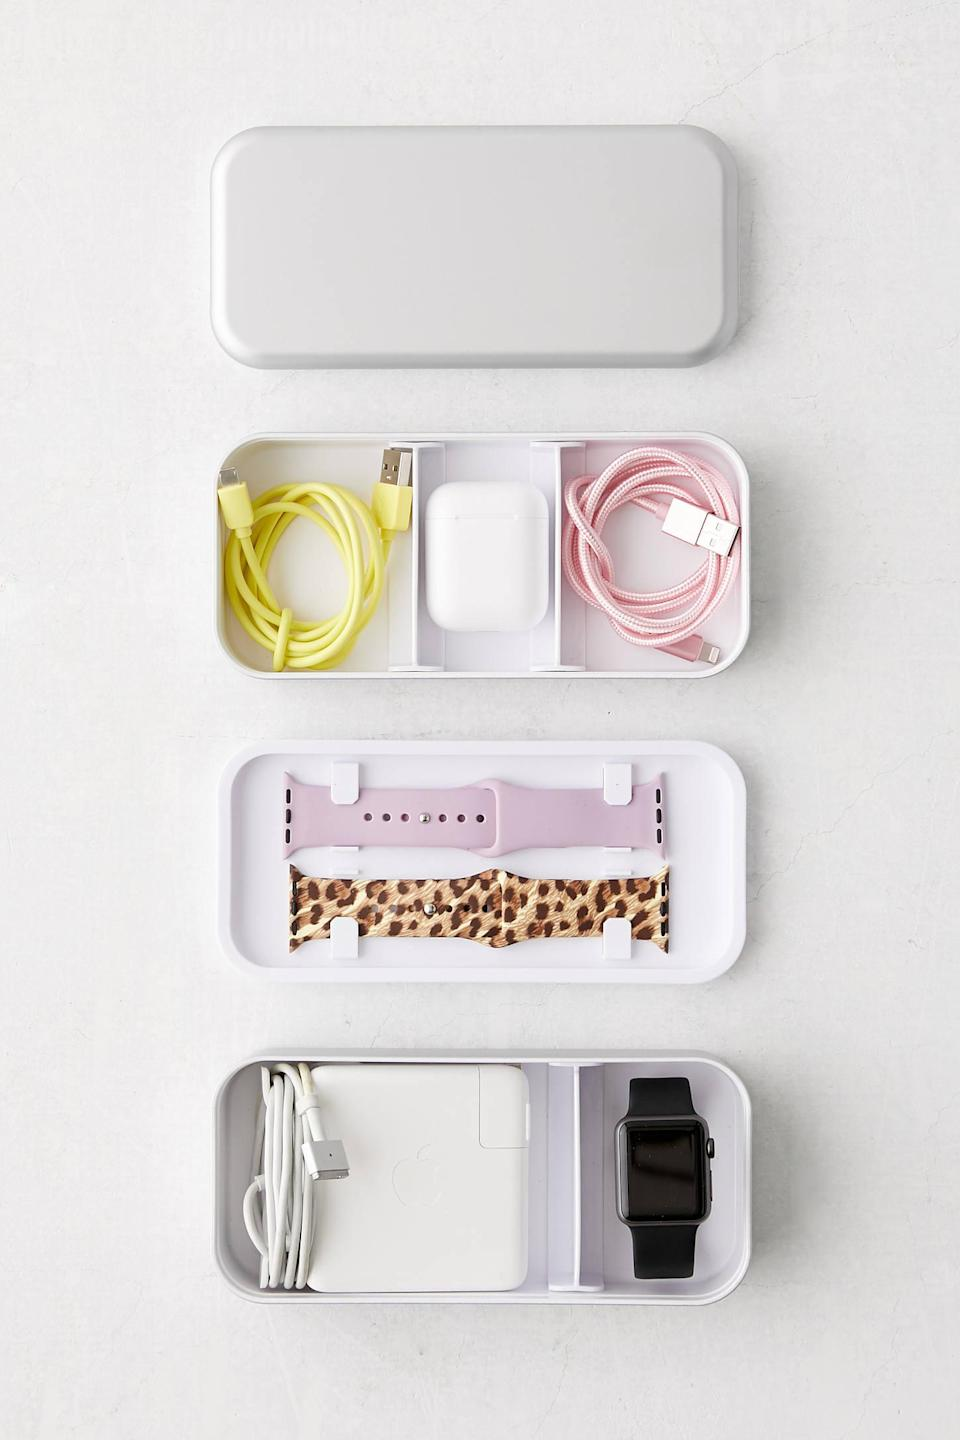 """<h2>BentoStack Tech Organizer</h2><br>Cable management but make it SO freaking cute.<br><br><strong>Urban Outfitters</strong> BentoStack Tech Organizer, $, available at <a href=""""https://go.skimresources.com/?id=30283X879131&url=https%3A%2F%2Fwww.urbanoutfitters.com%2Fshop%2Fbentostack-tech-organizer%3Fcolor%3D066%26type%3DREGULAR%26size%3DONE%2520SIZE%26quantity%3D1"""" rel=""""nofollow noopener"""" target=""""_blank"""" data-ylk=""""slk:Urban Outfitters"""" class=""""link rapid-noclick-resp"""">Urban Outfitters</a>"""